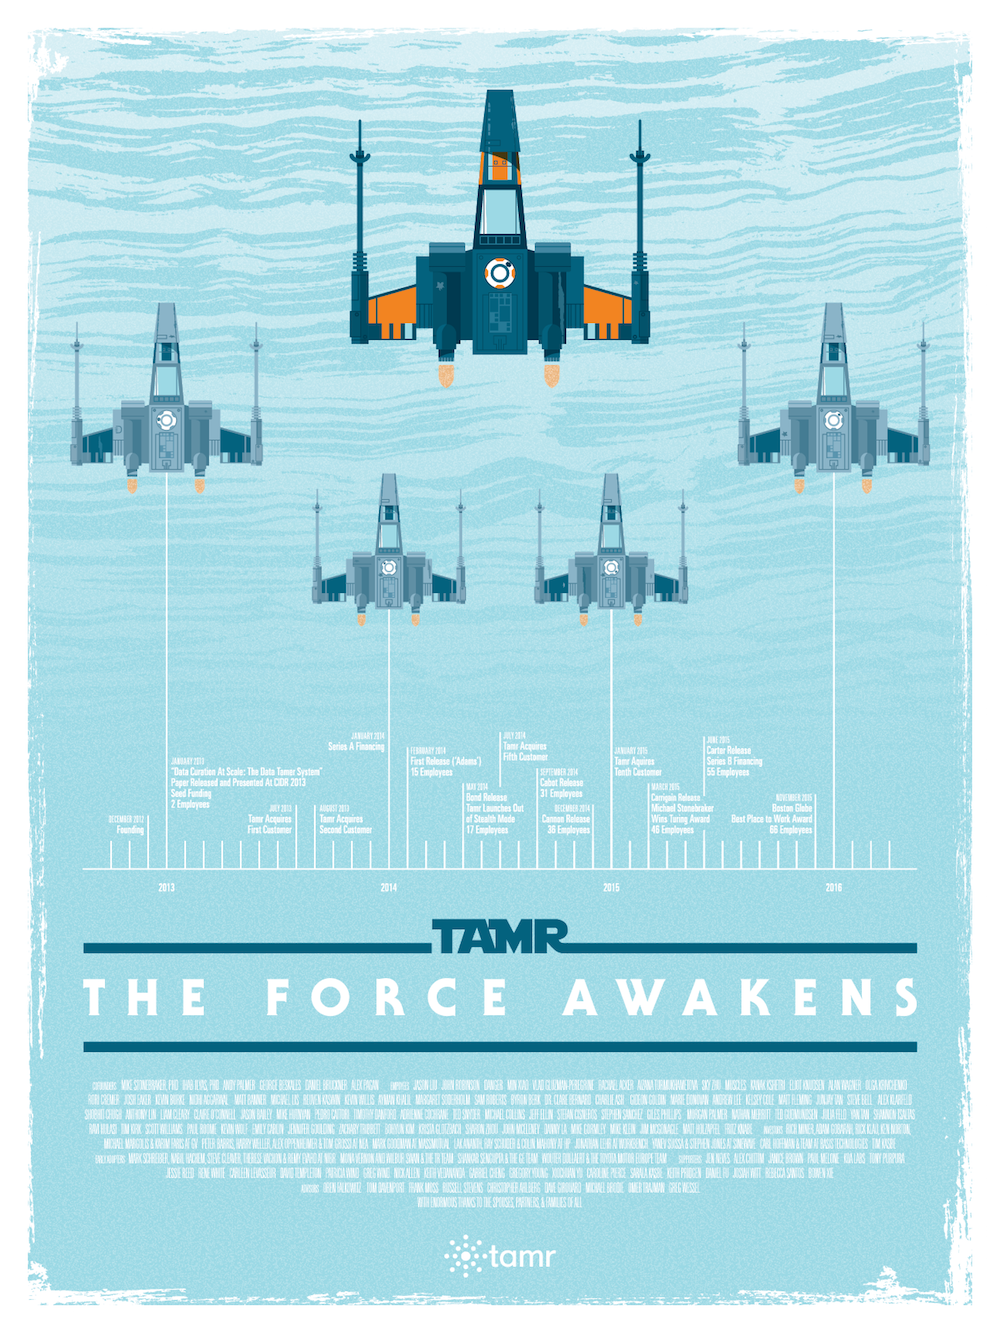 Tamr 2015 Holiday Poster - Light Side